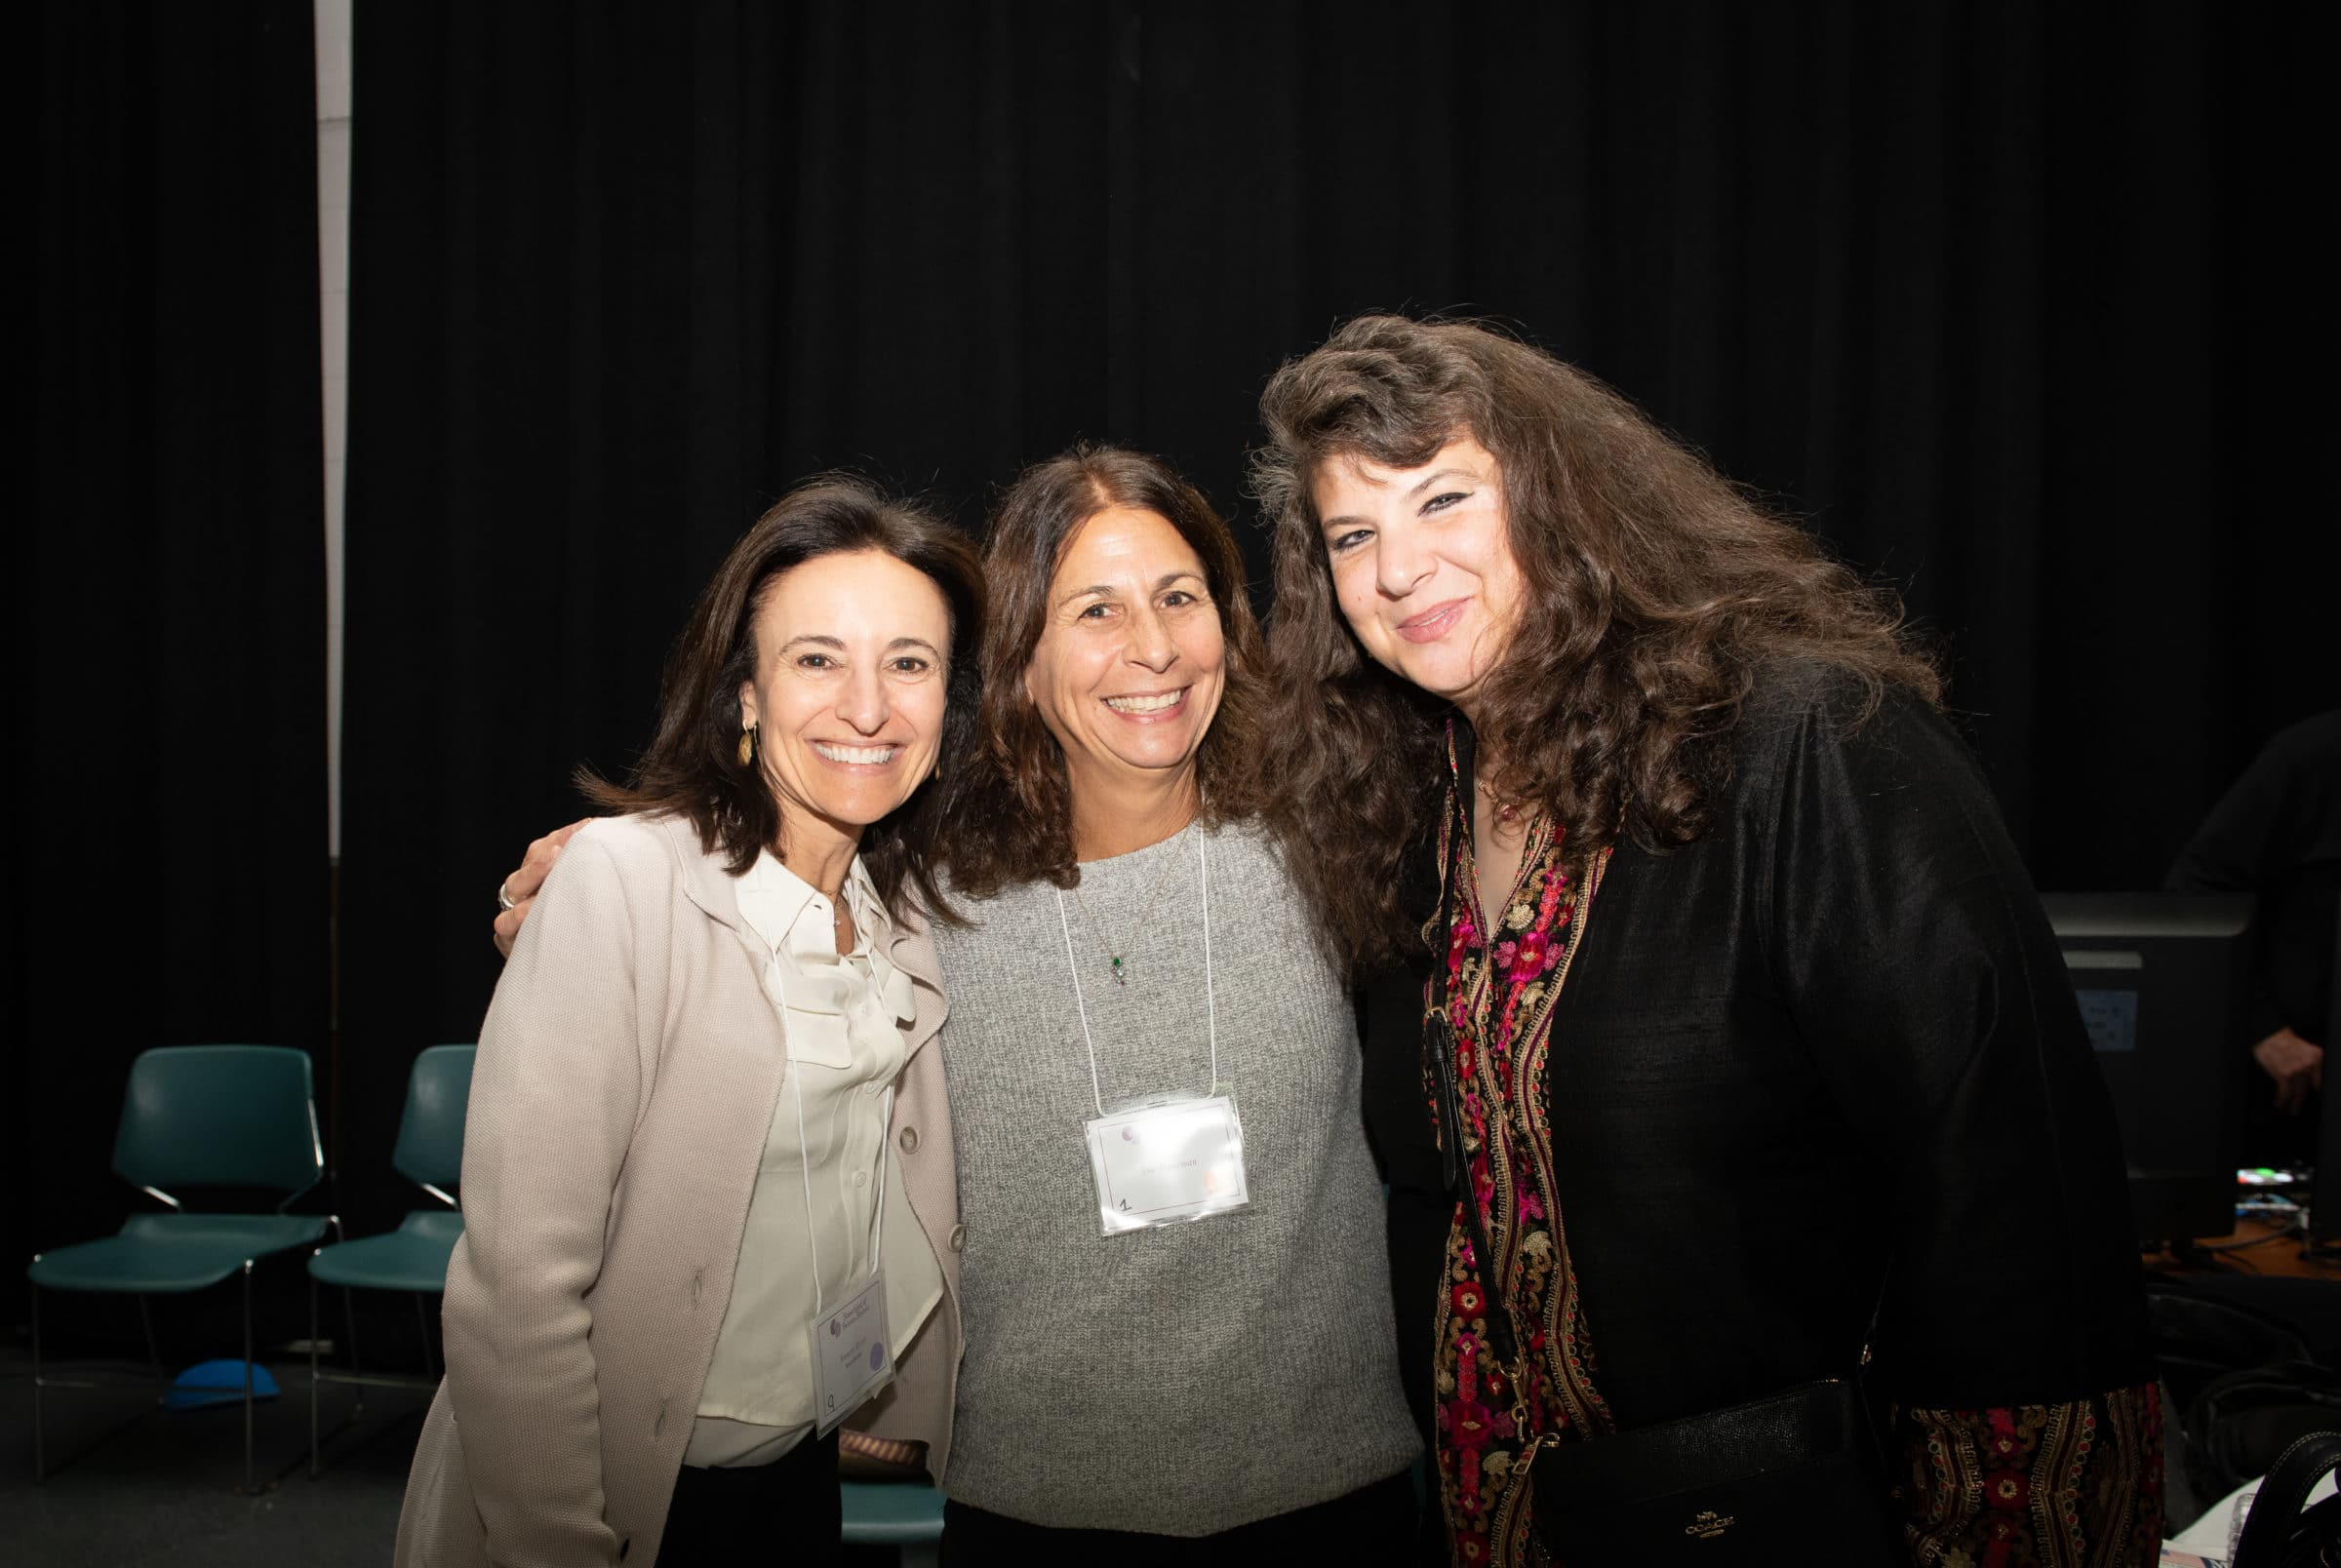 three women smiling for camera with arms around each other